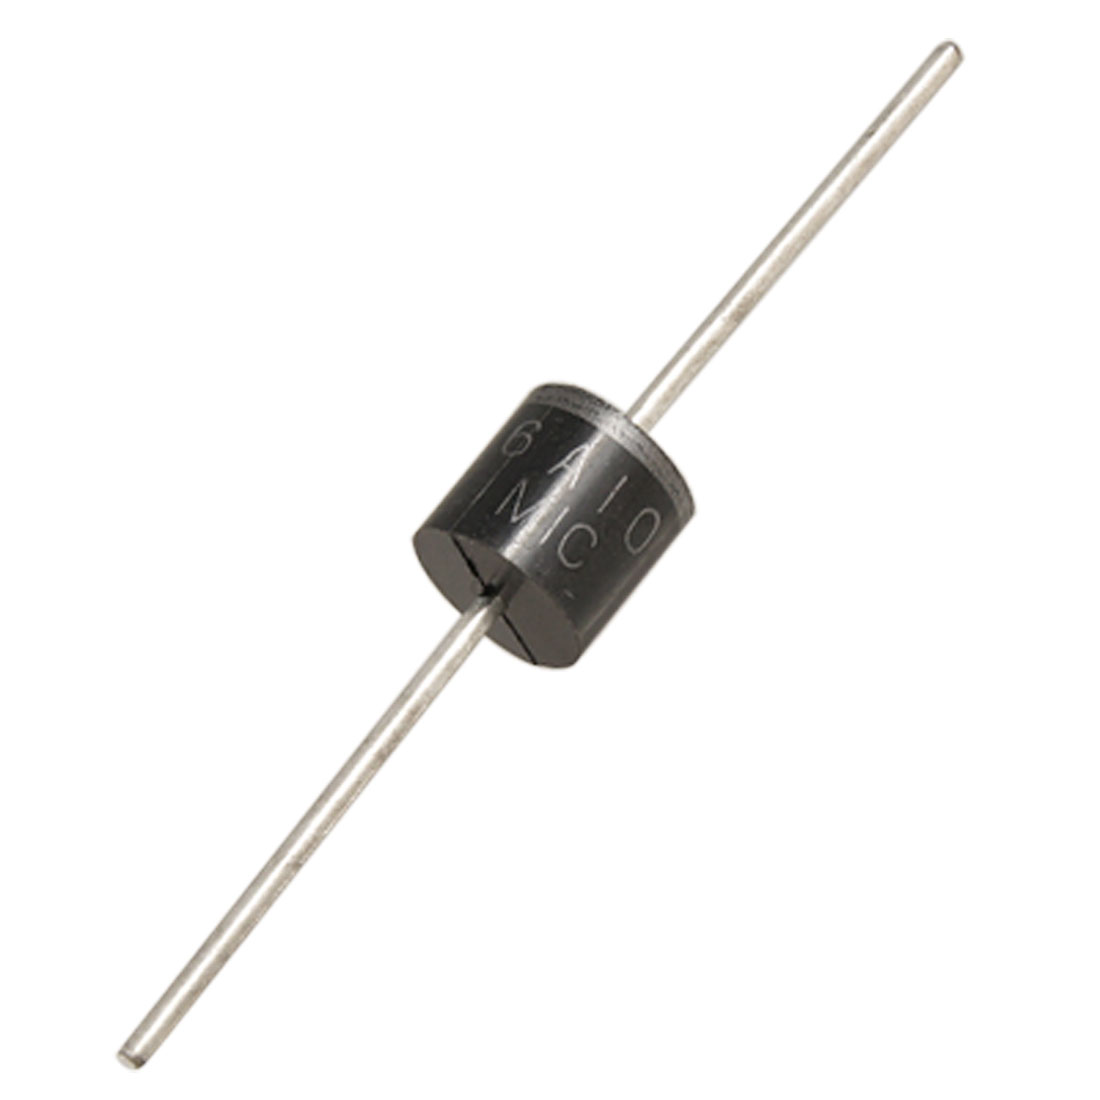 200 Pcs 6A 1000V Axial Lead Silicon Rectifier Diodes 6A10